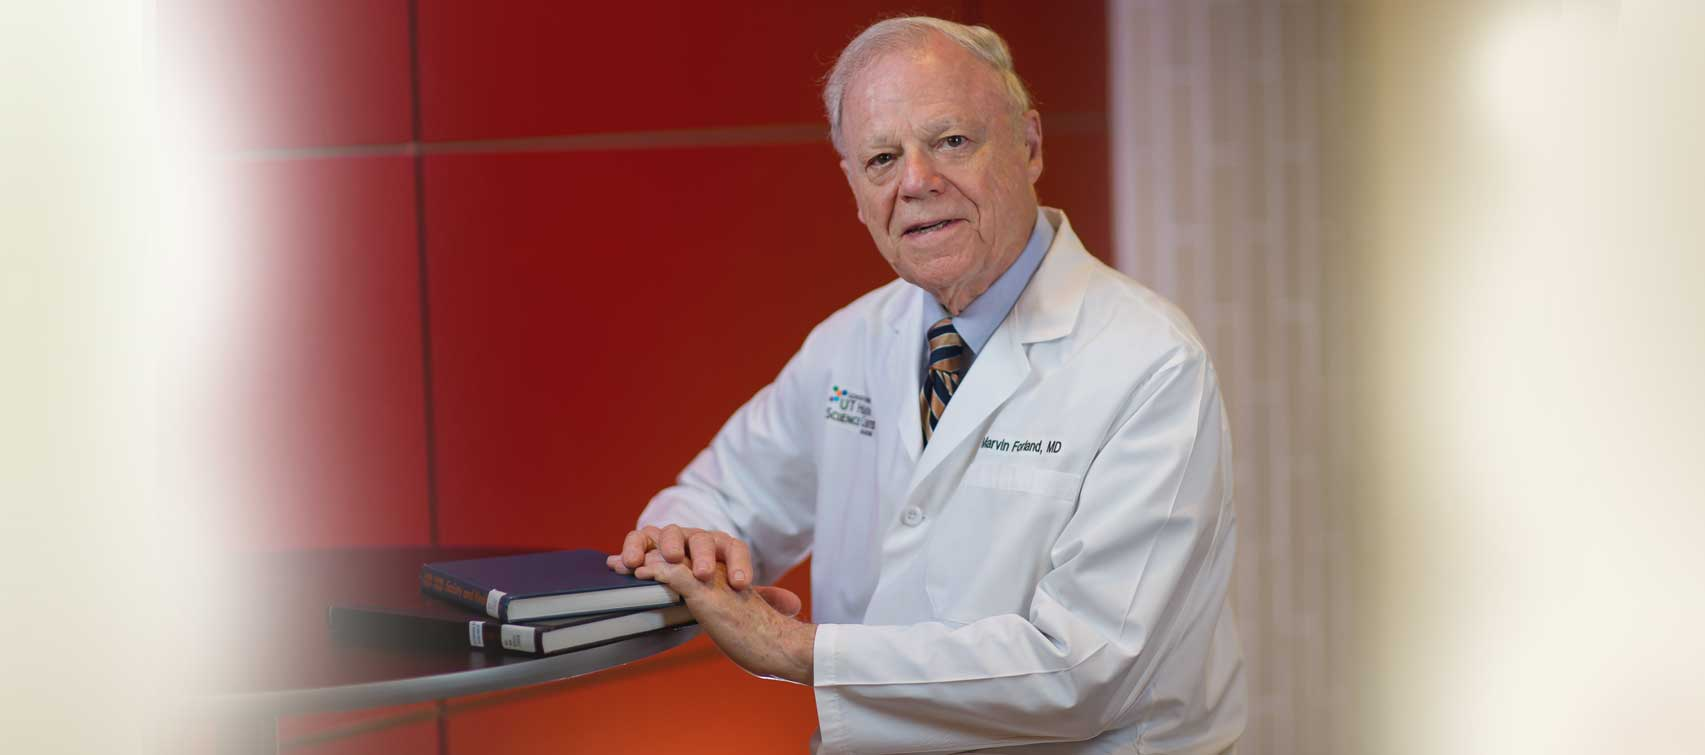 Founding faculty member Marvin Forland, M.D., MACP, serves as a volunteer at the UT Health Science Center. The nephrologist gives back his time to the Center for Medical Humanities & Ethics.